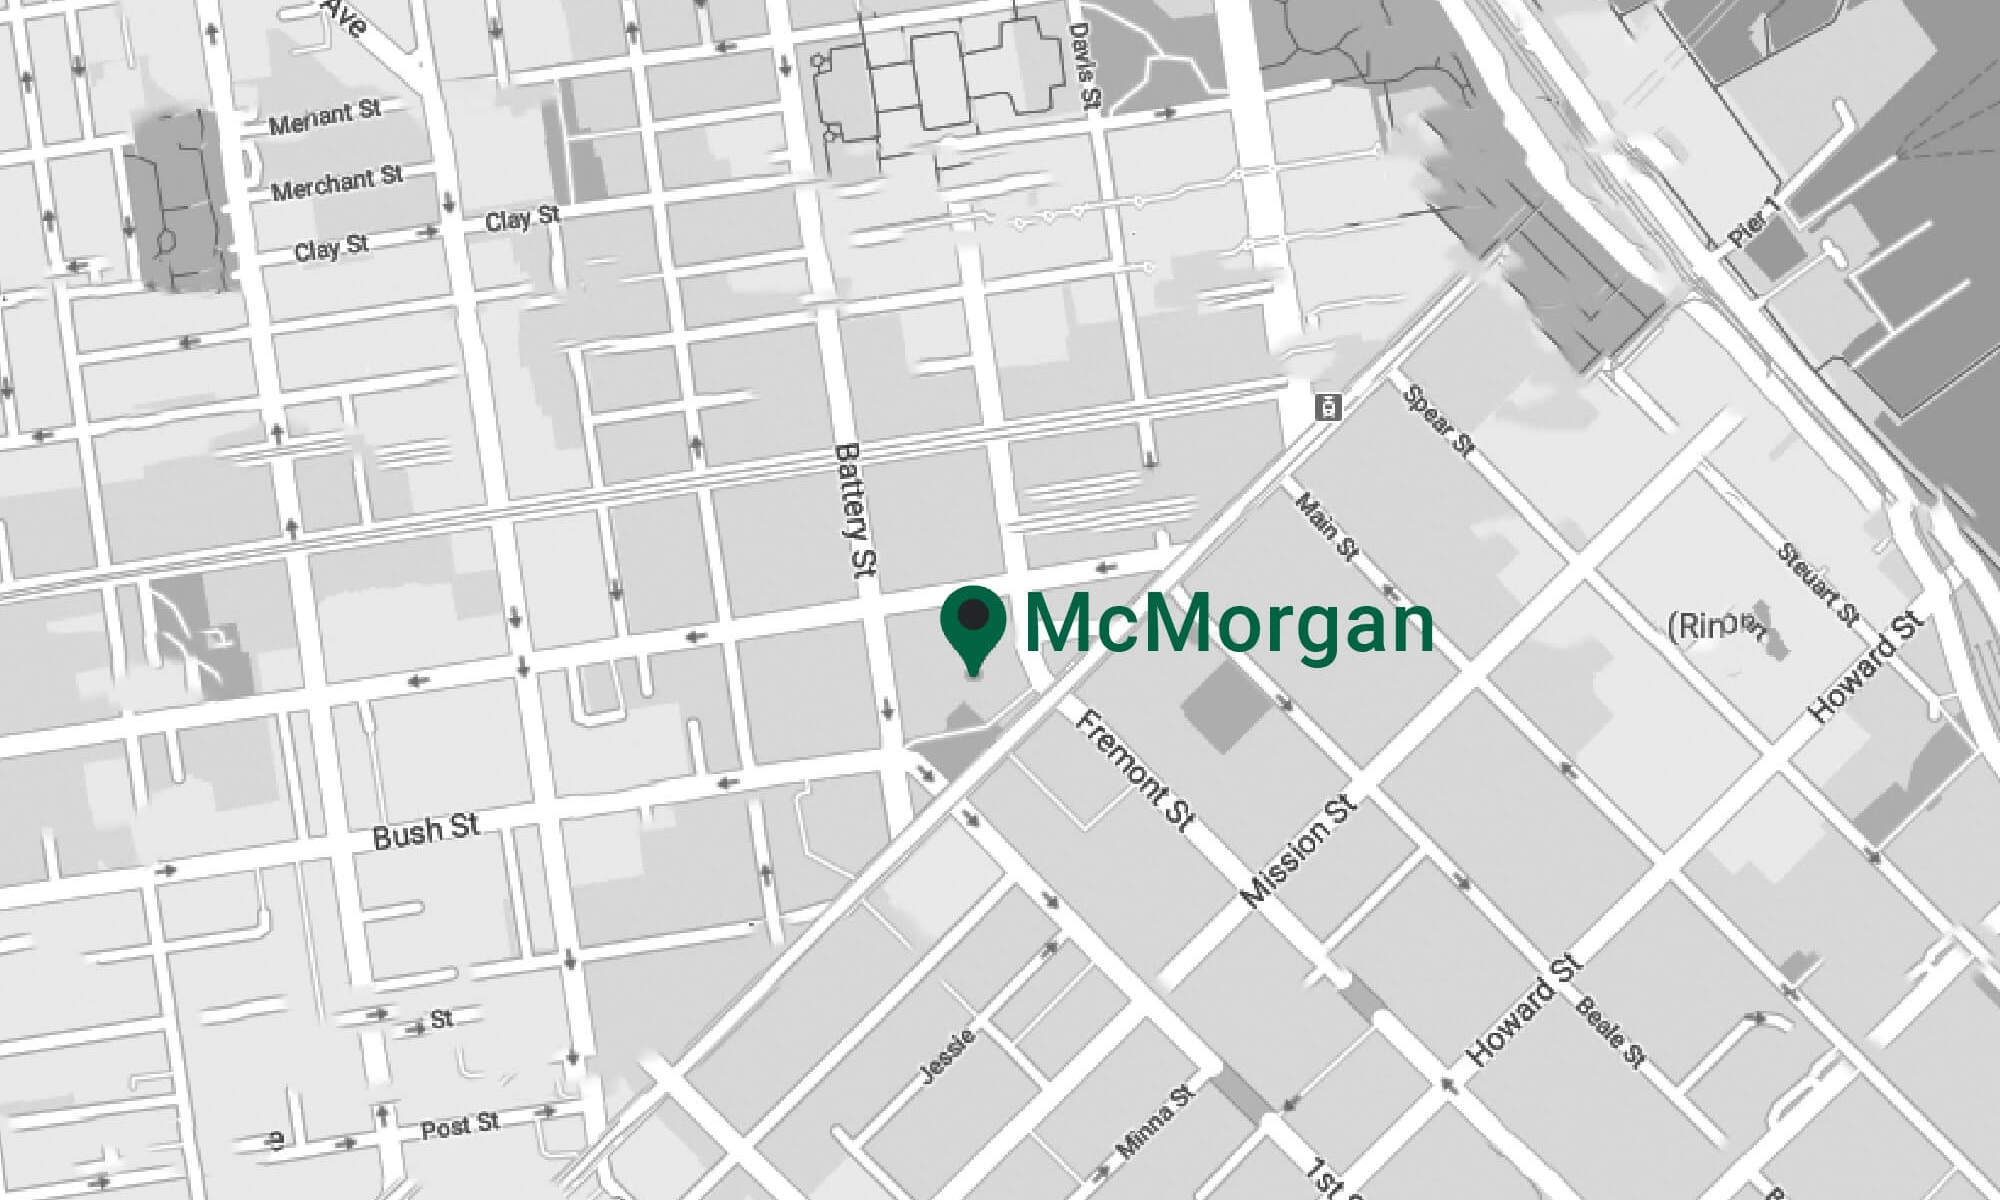 mcmorgan-map